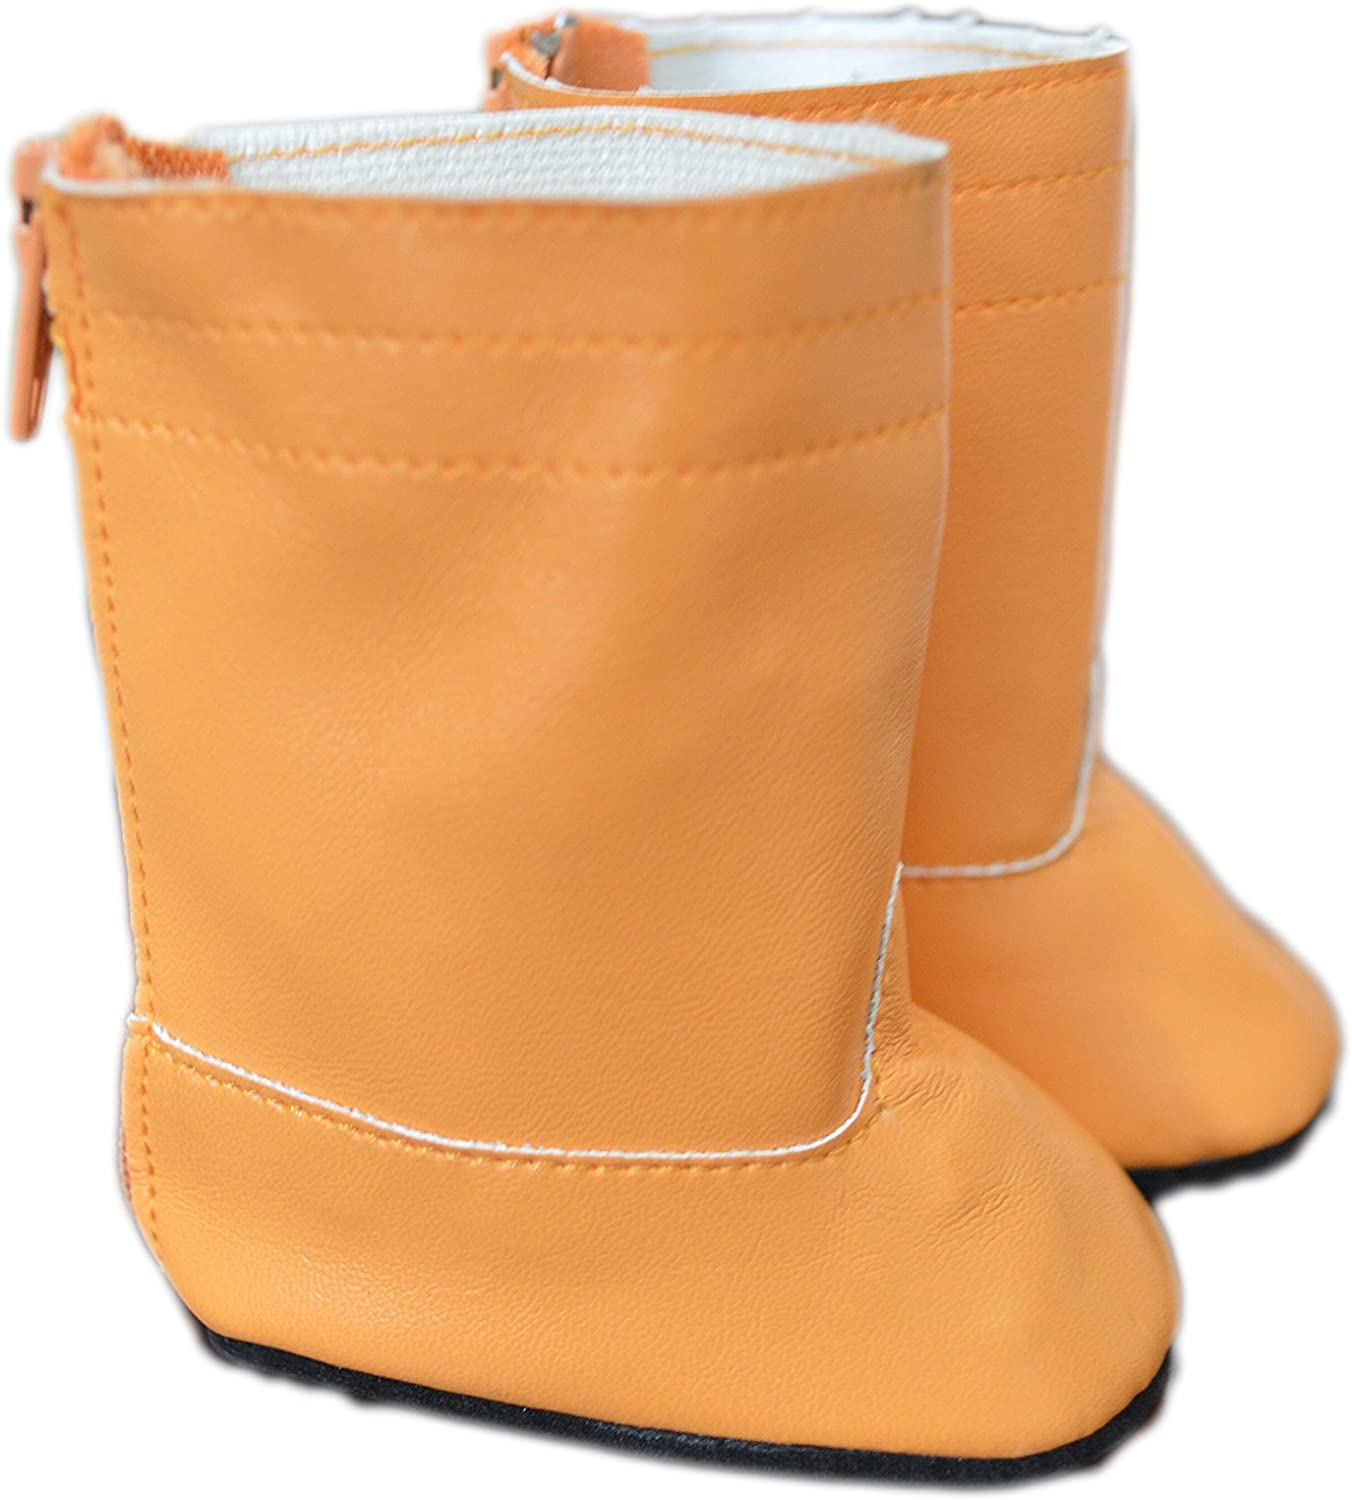 Brittanys My Fall Boots Compatible with Wellie Wisher Dolls